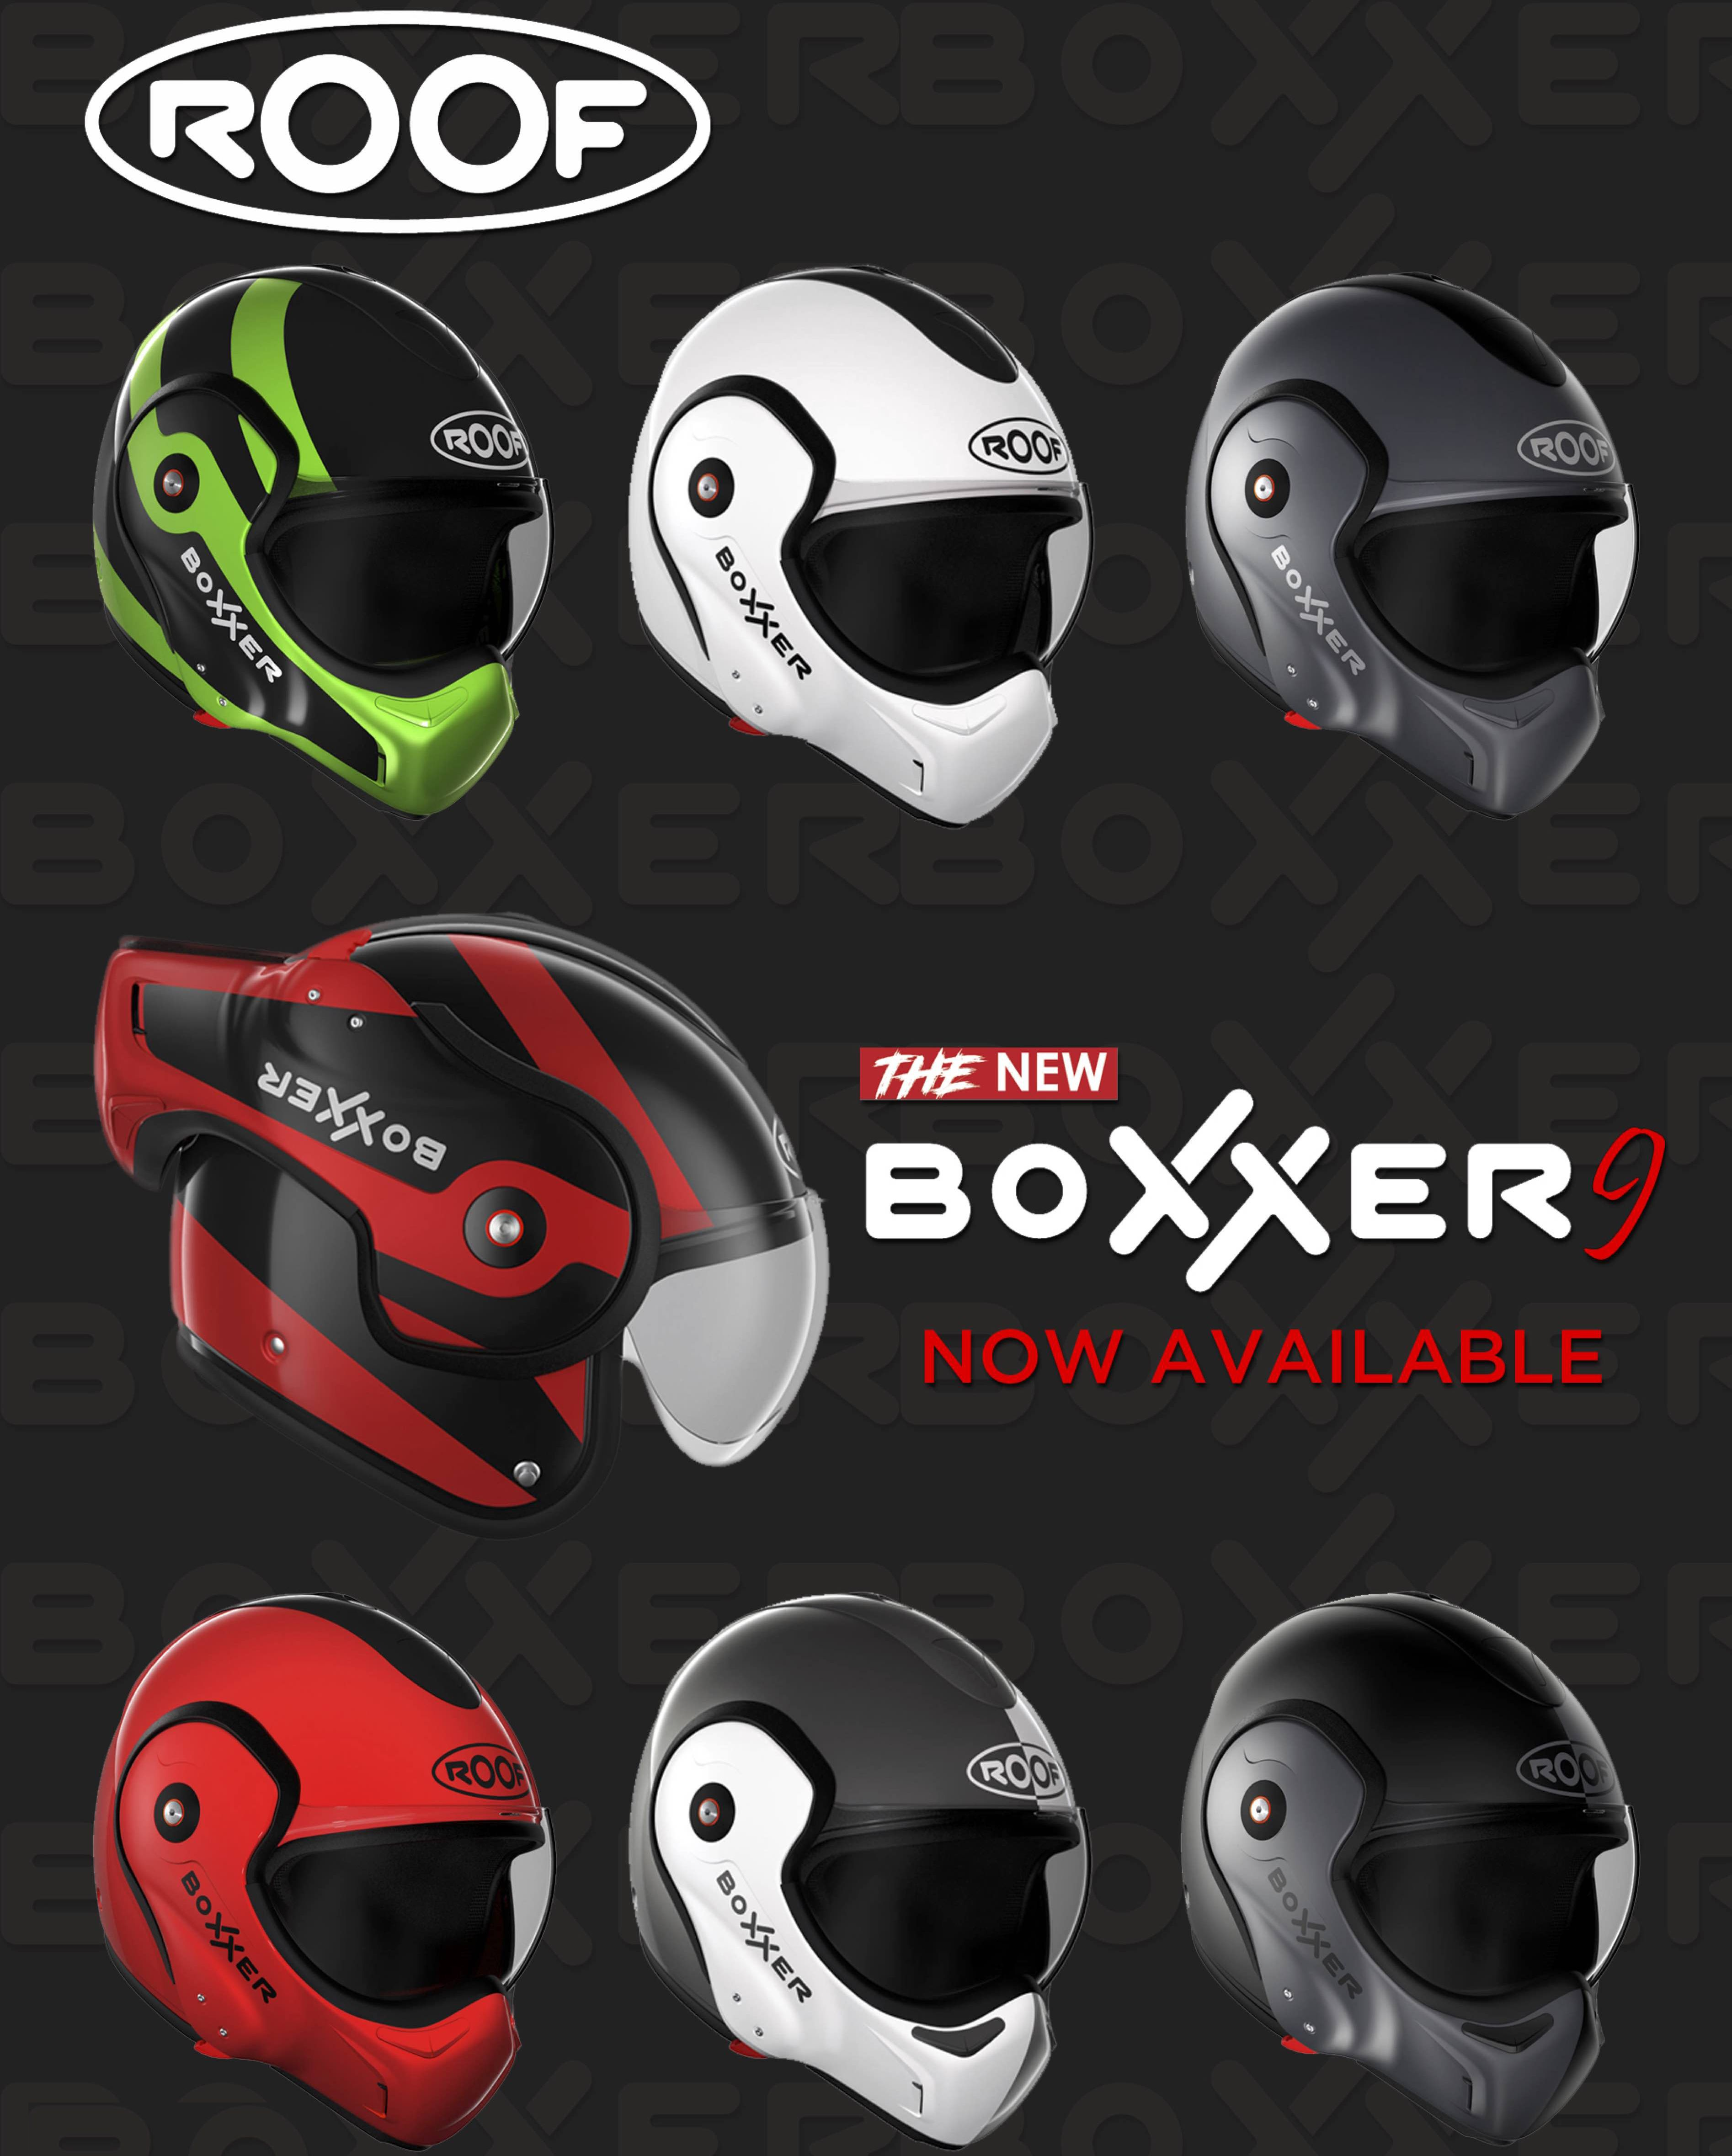 Roof Boxxer 9 Now Available Call For More Info 020 7272 5252 Roof Boxxer Motorcycle Helmet Motorcycles Helmets Scooter Helmet Helmet Motorbike Helmet